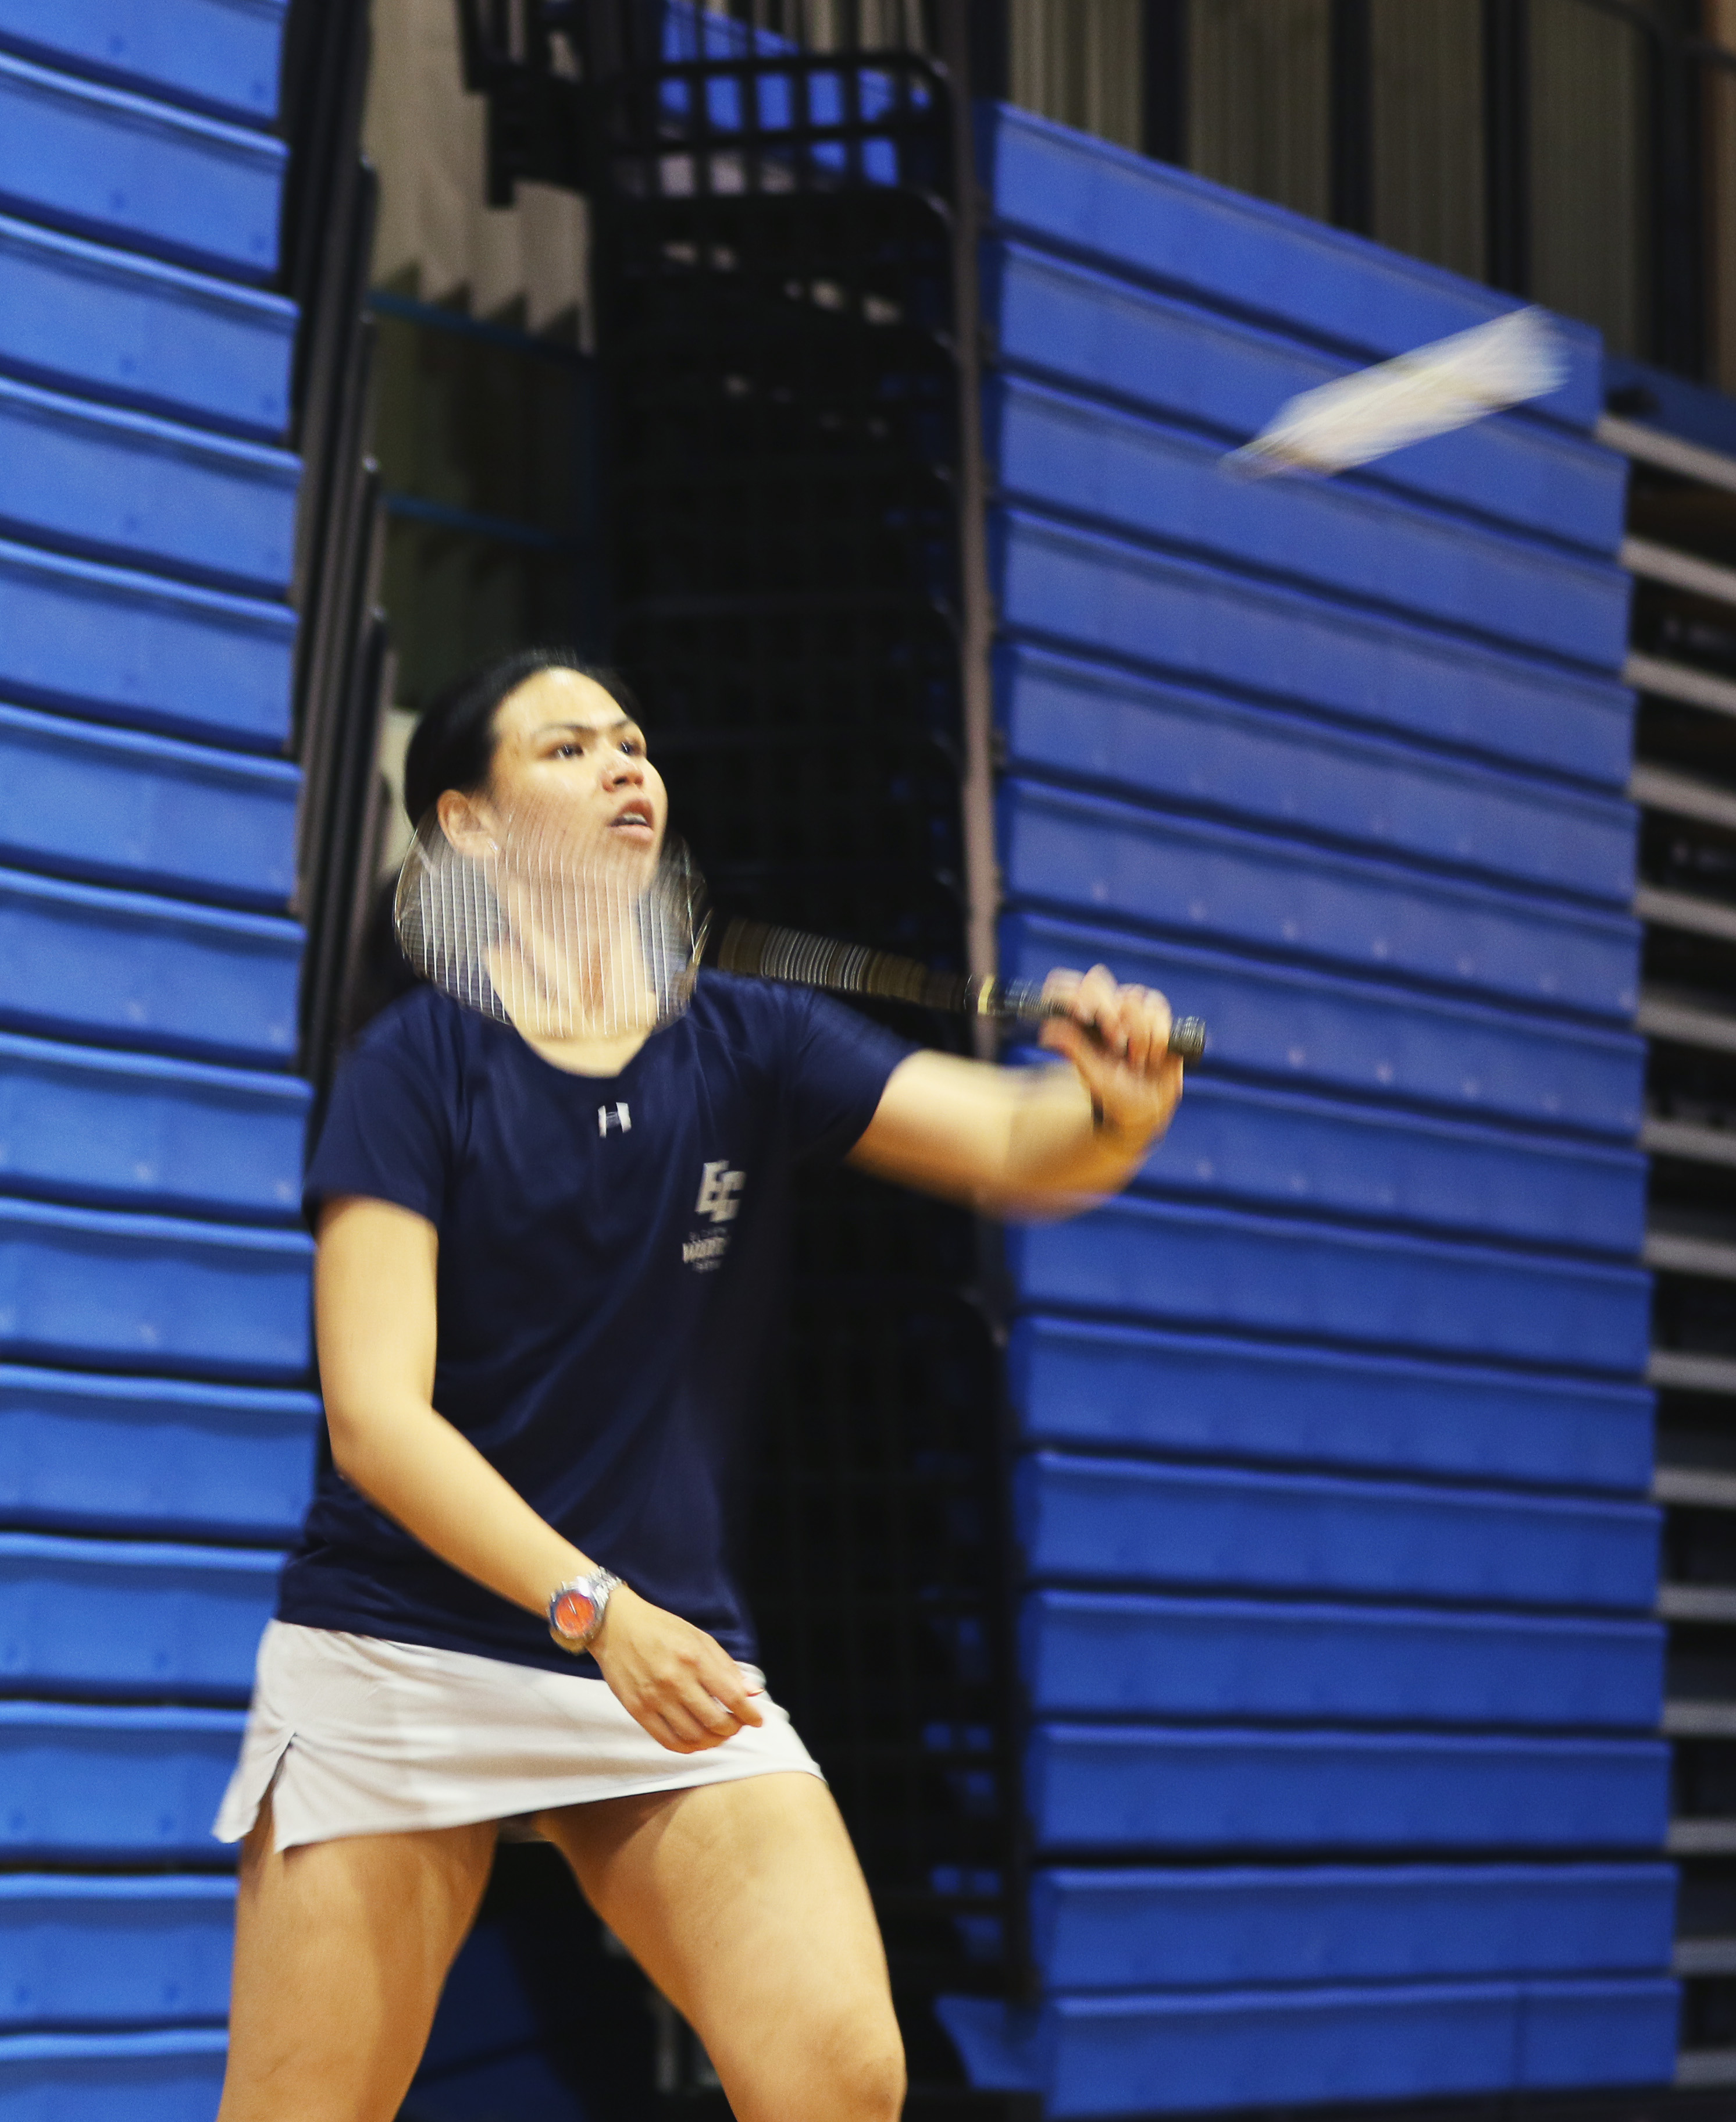 El Camino women's badminton team beat El Camino-Compton Center to sweep the season series